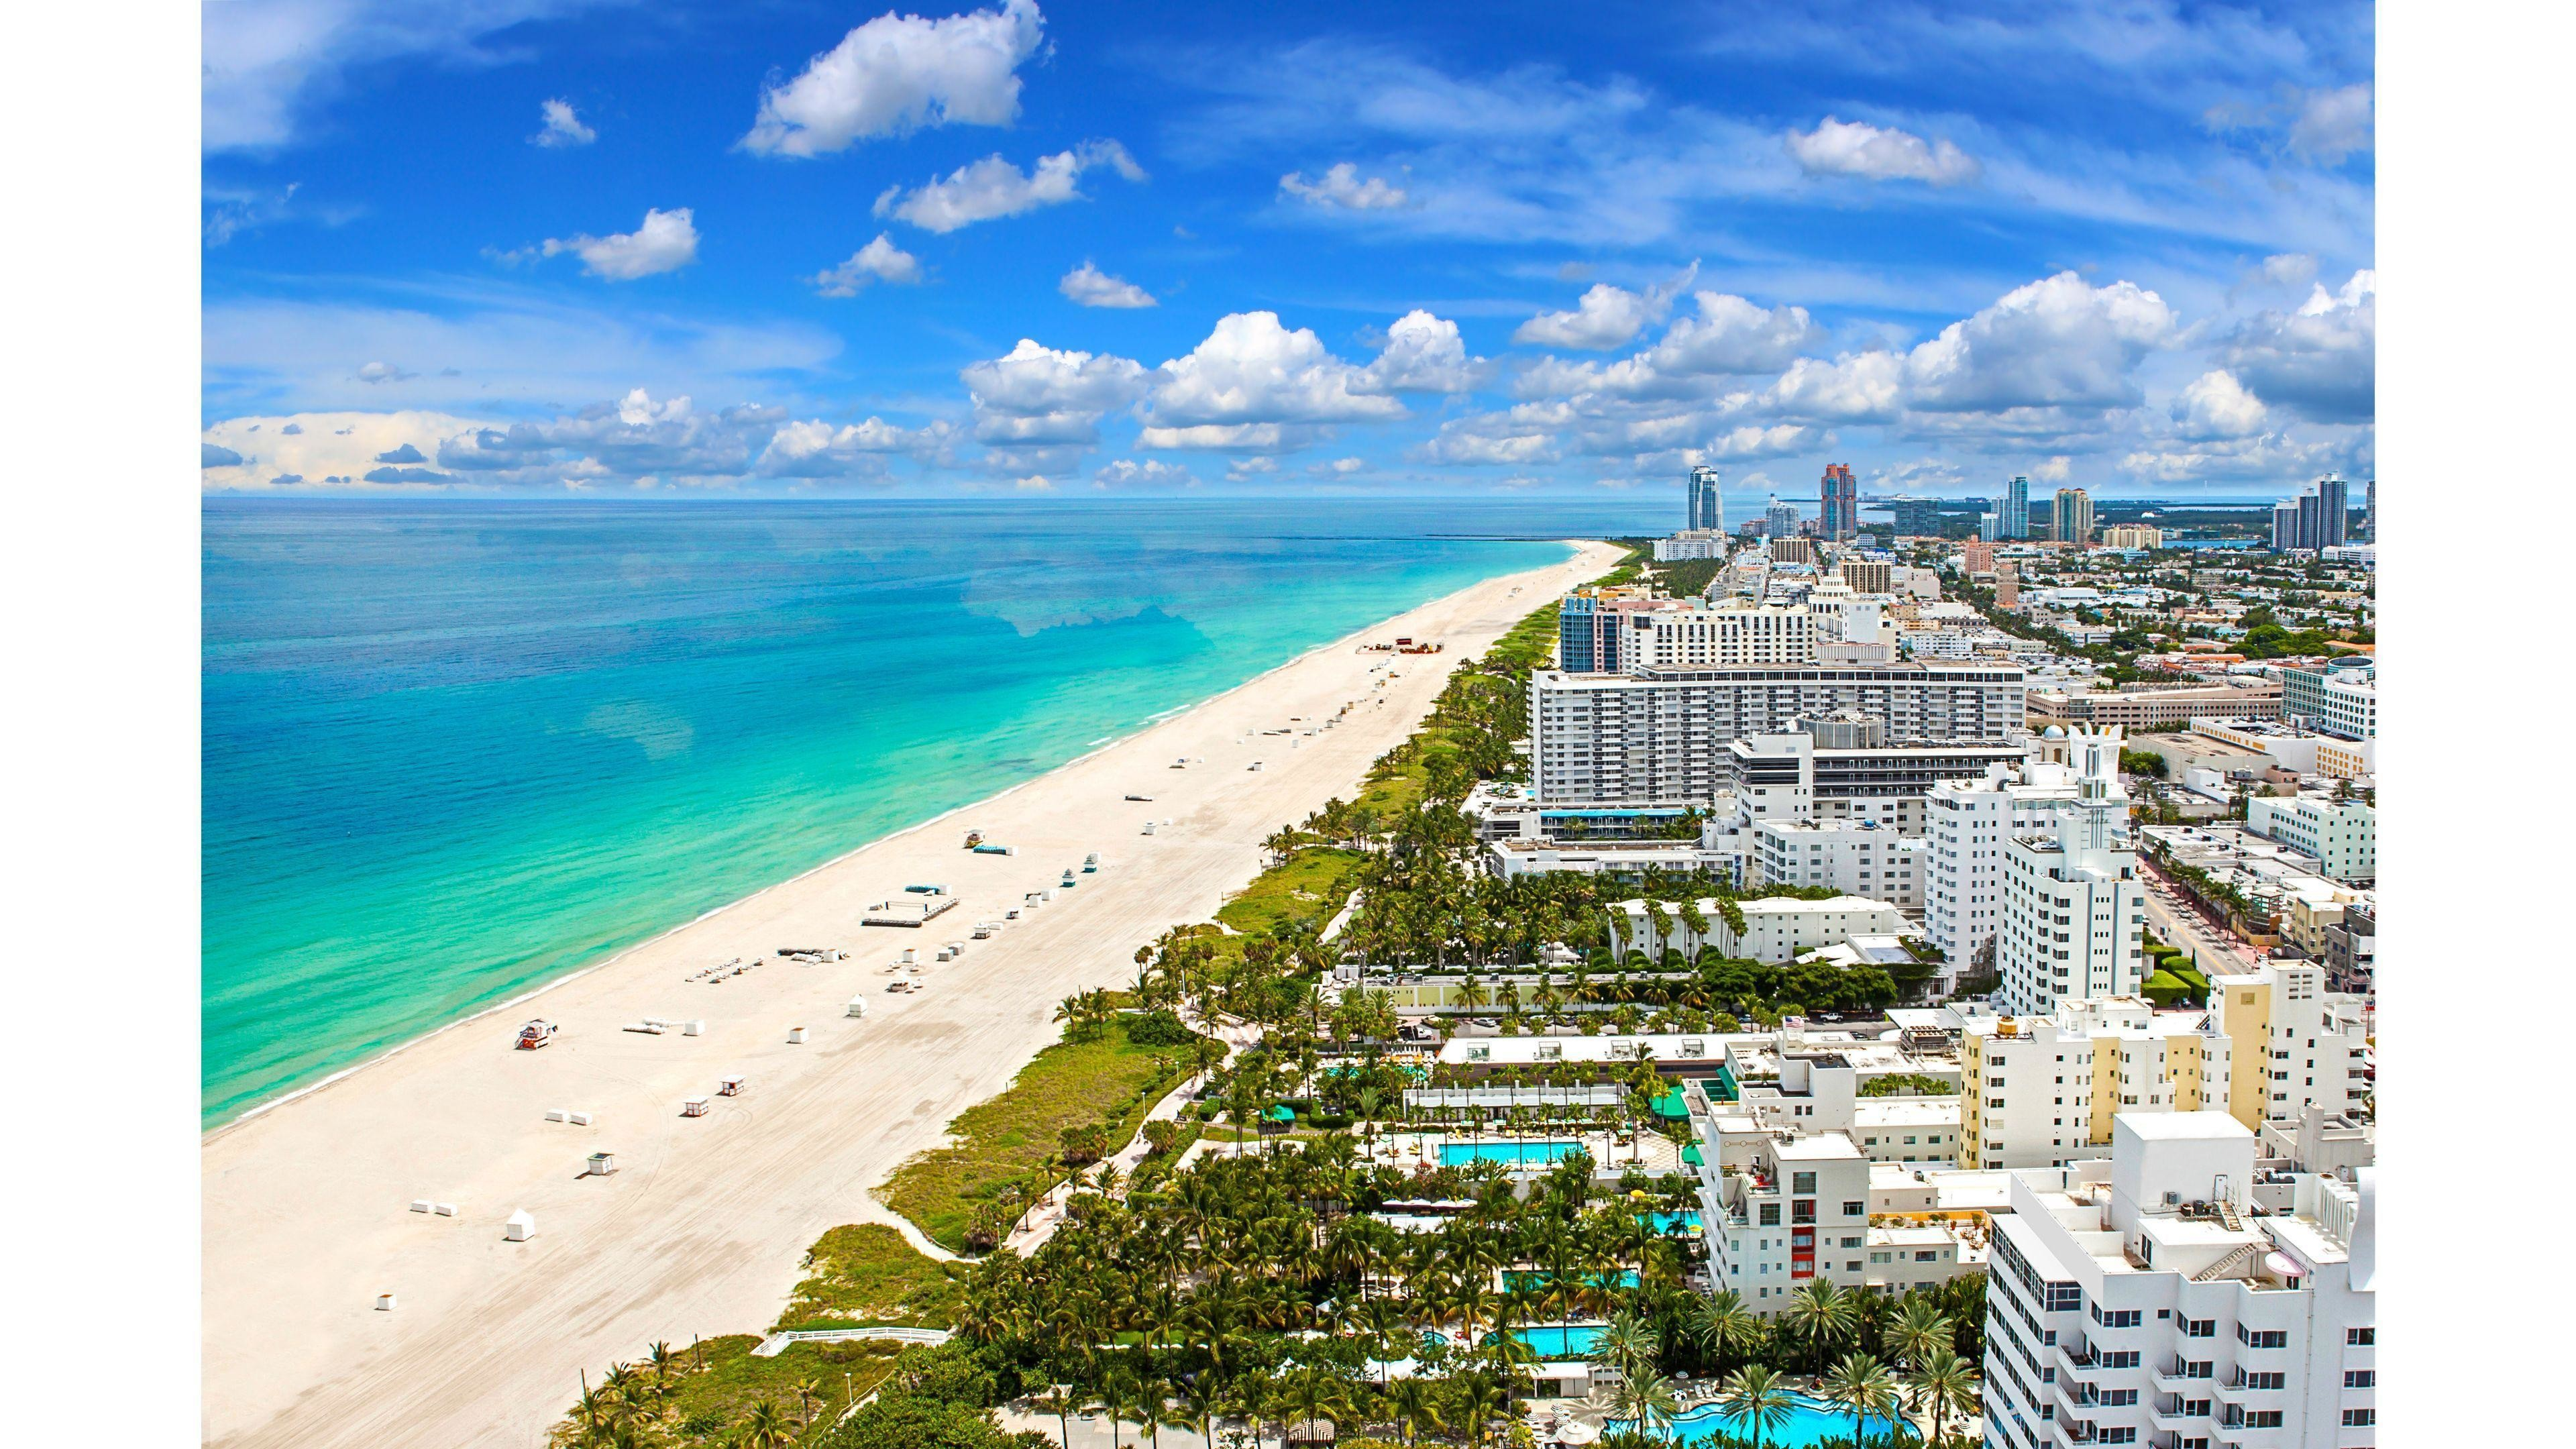 South Beach Miami Wallpaper (58+ Images